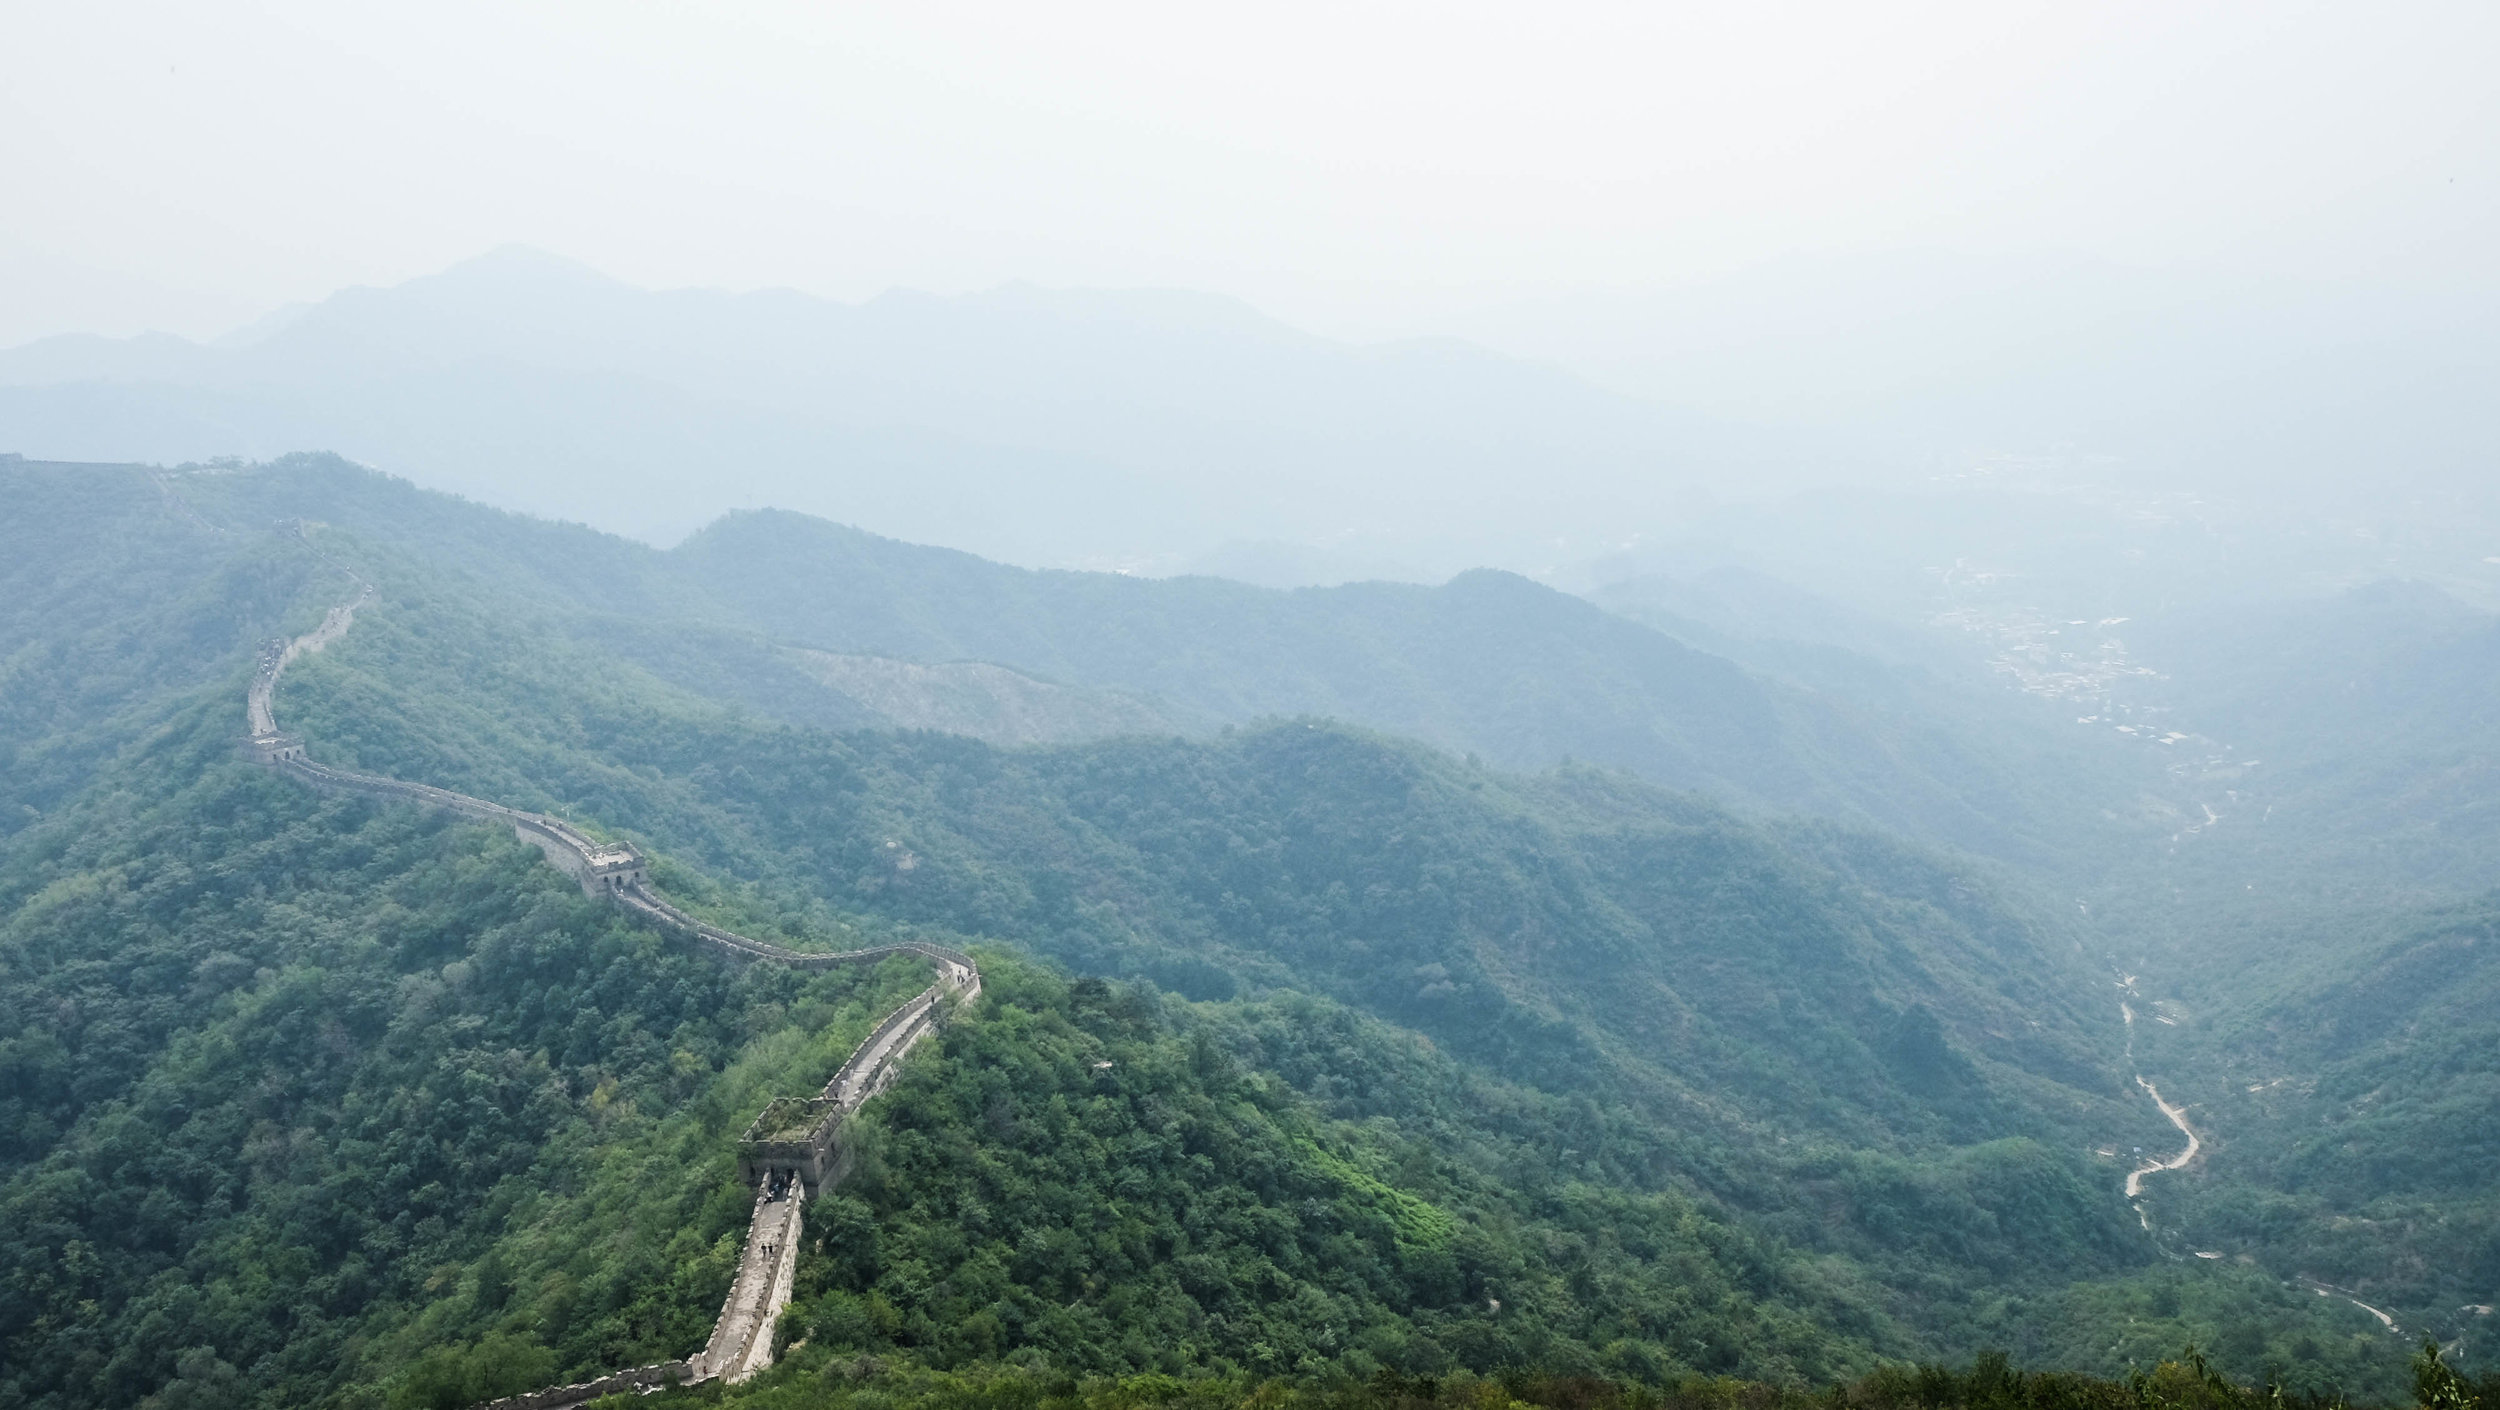 View from the peak of the Great Wall along the Mutianyu path.